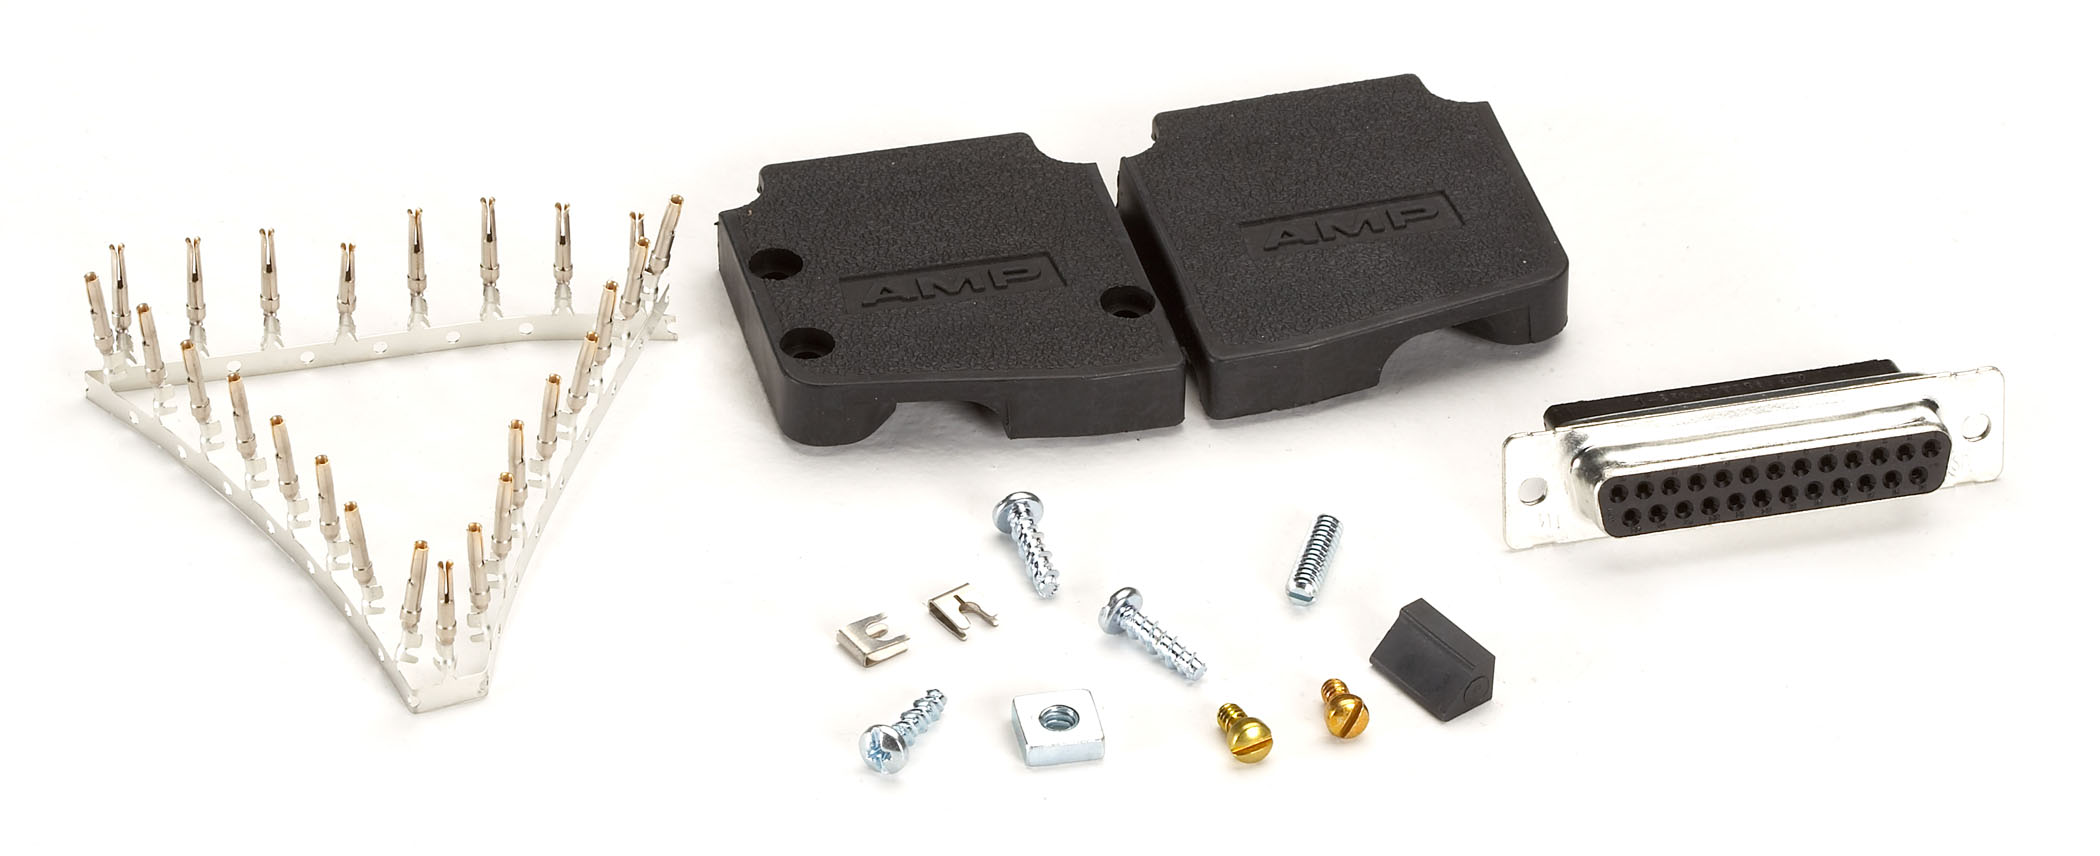 DB25 Female Connector Assembly Kit | Black Box